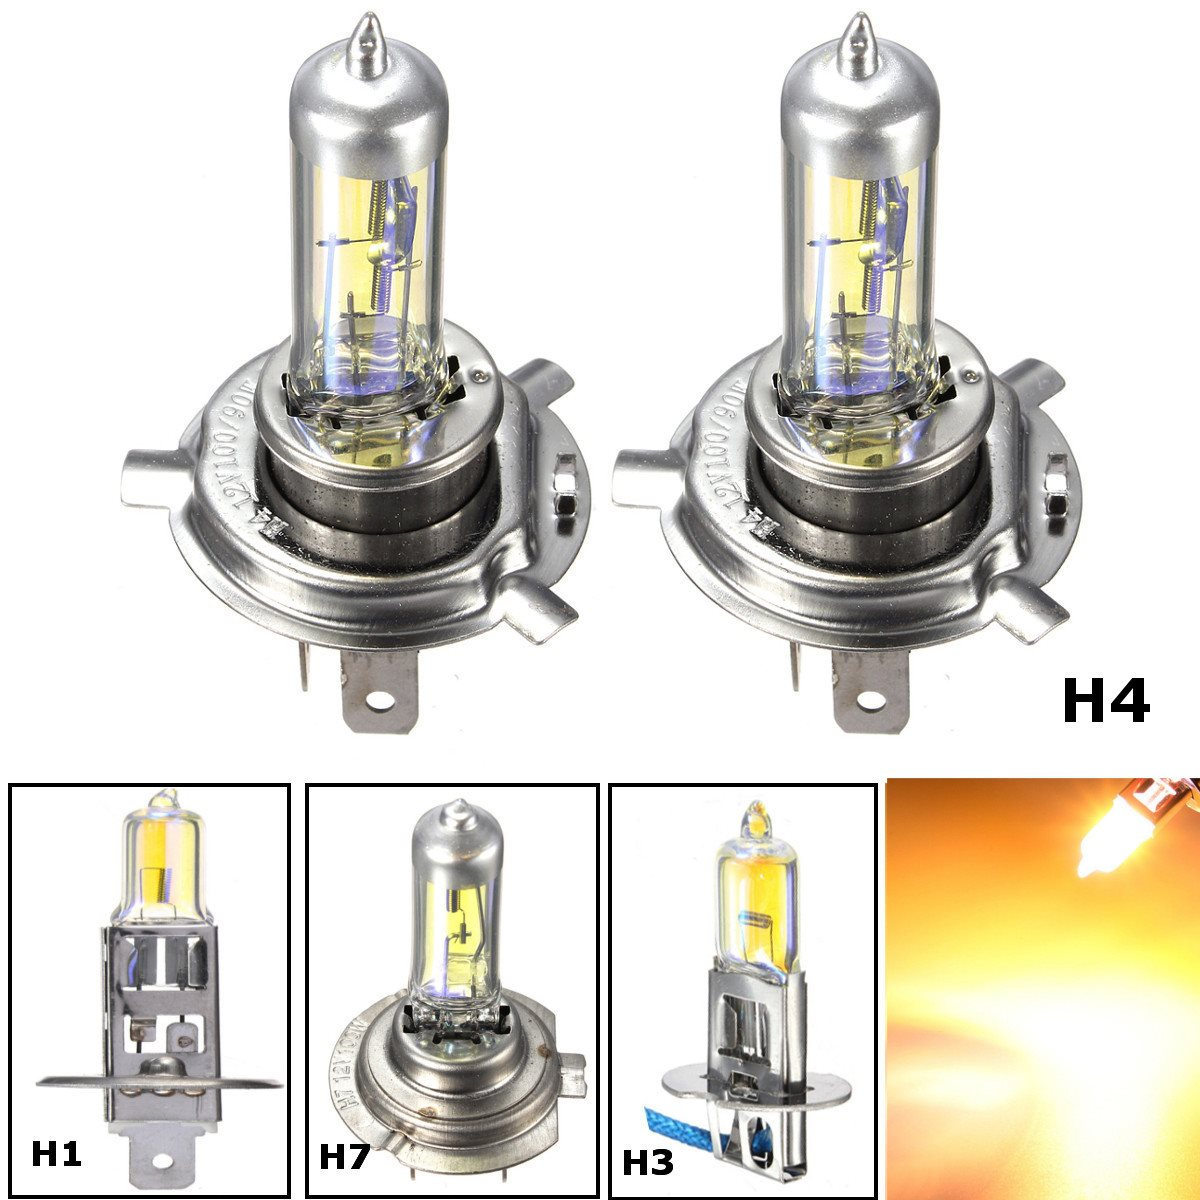 Top H1 H3 H4 H7 55 w Geel LED Auto Licht Halogeen Lamp Auto Styling UM38